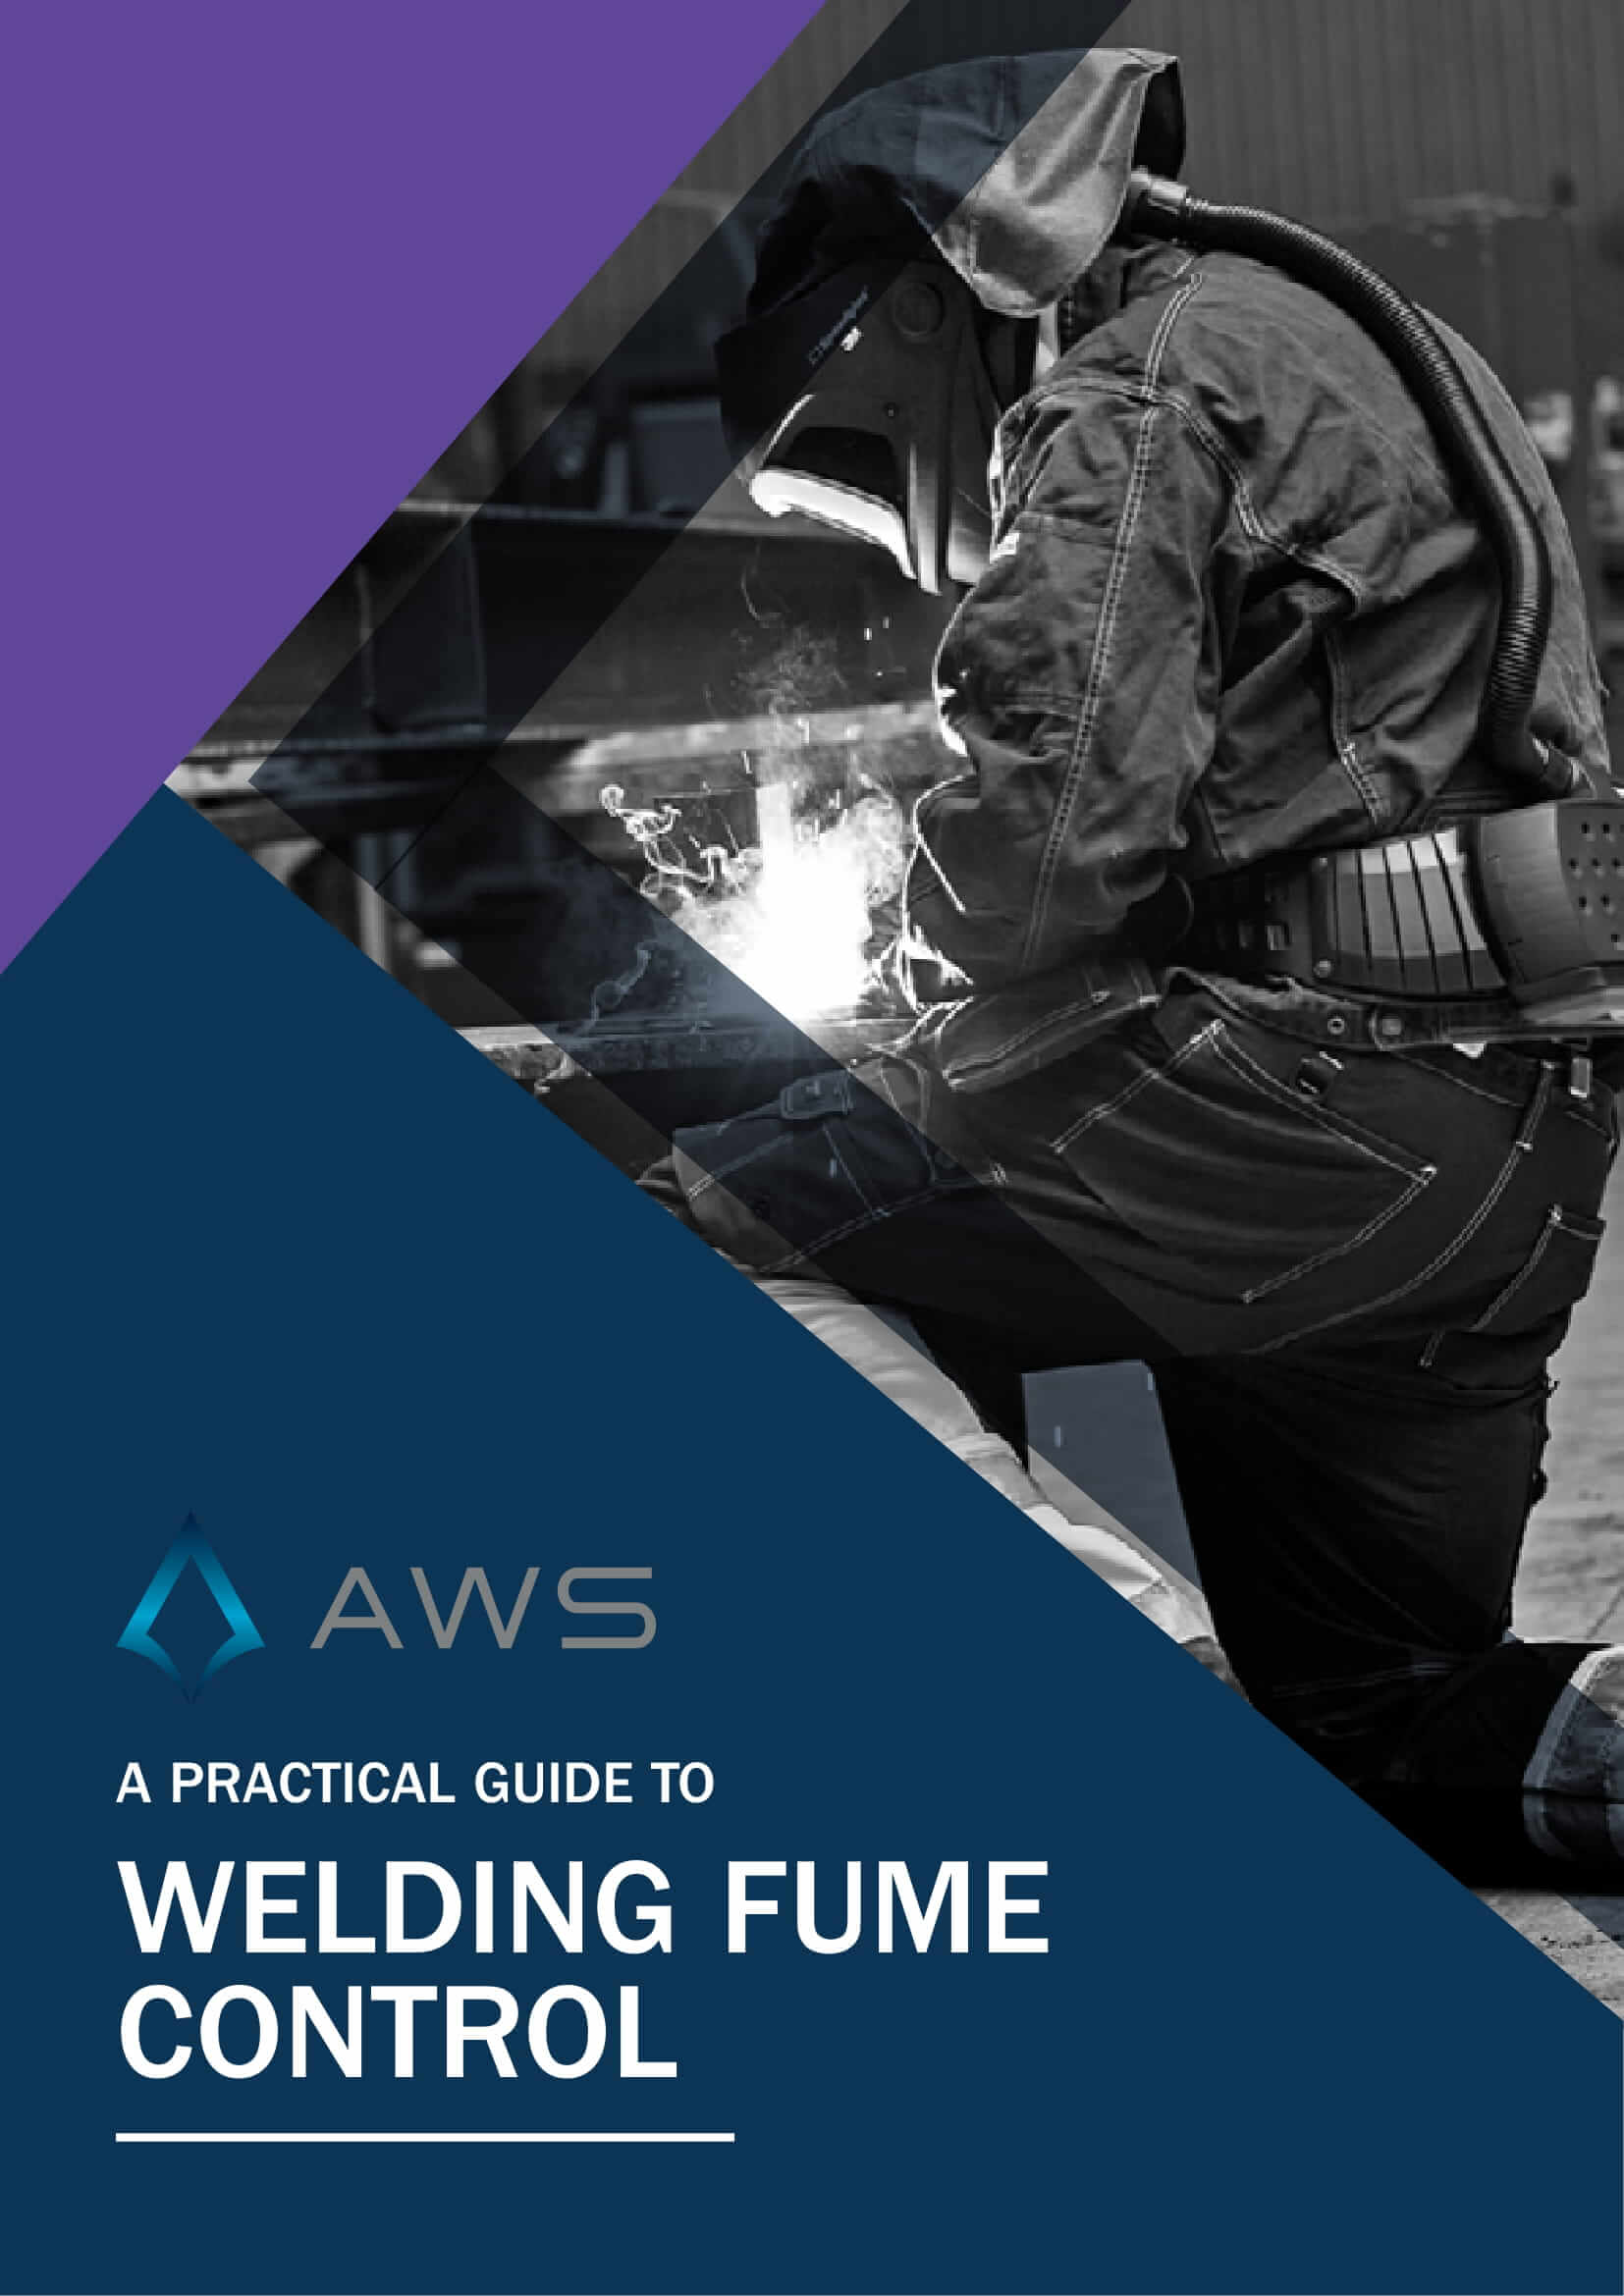 NEW: A Practical Guide to Welding Fume